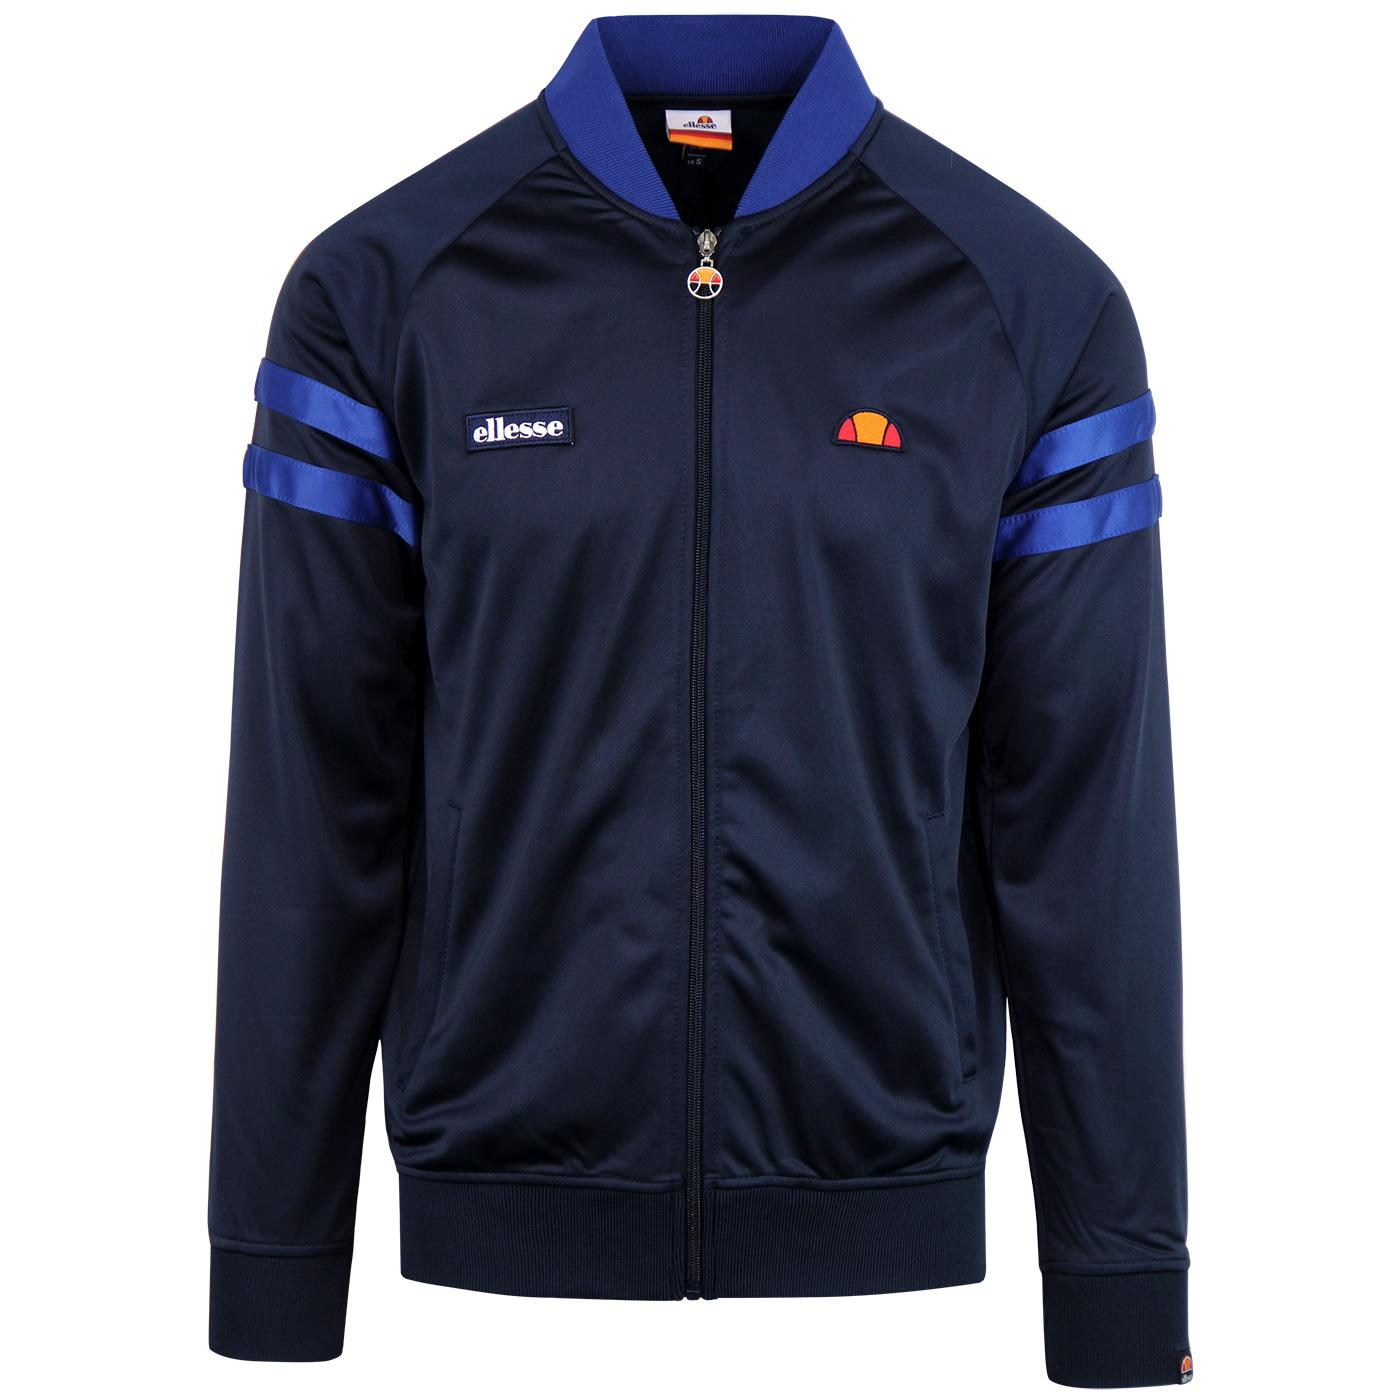 Romeo ELLESSE Men's Retro 70s Tricot Track Top DB